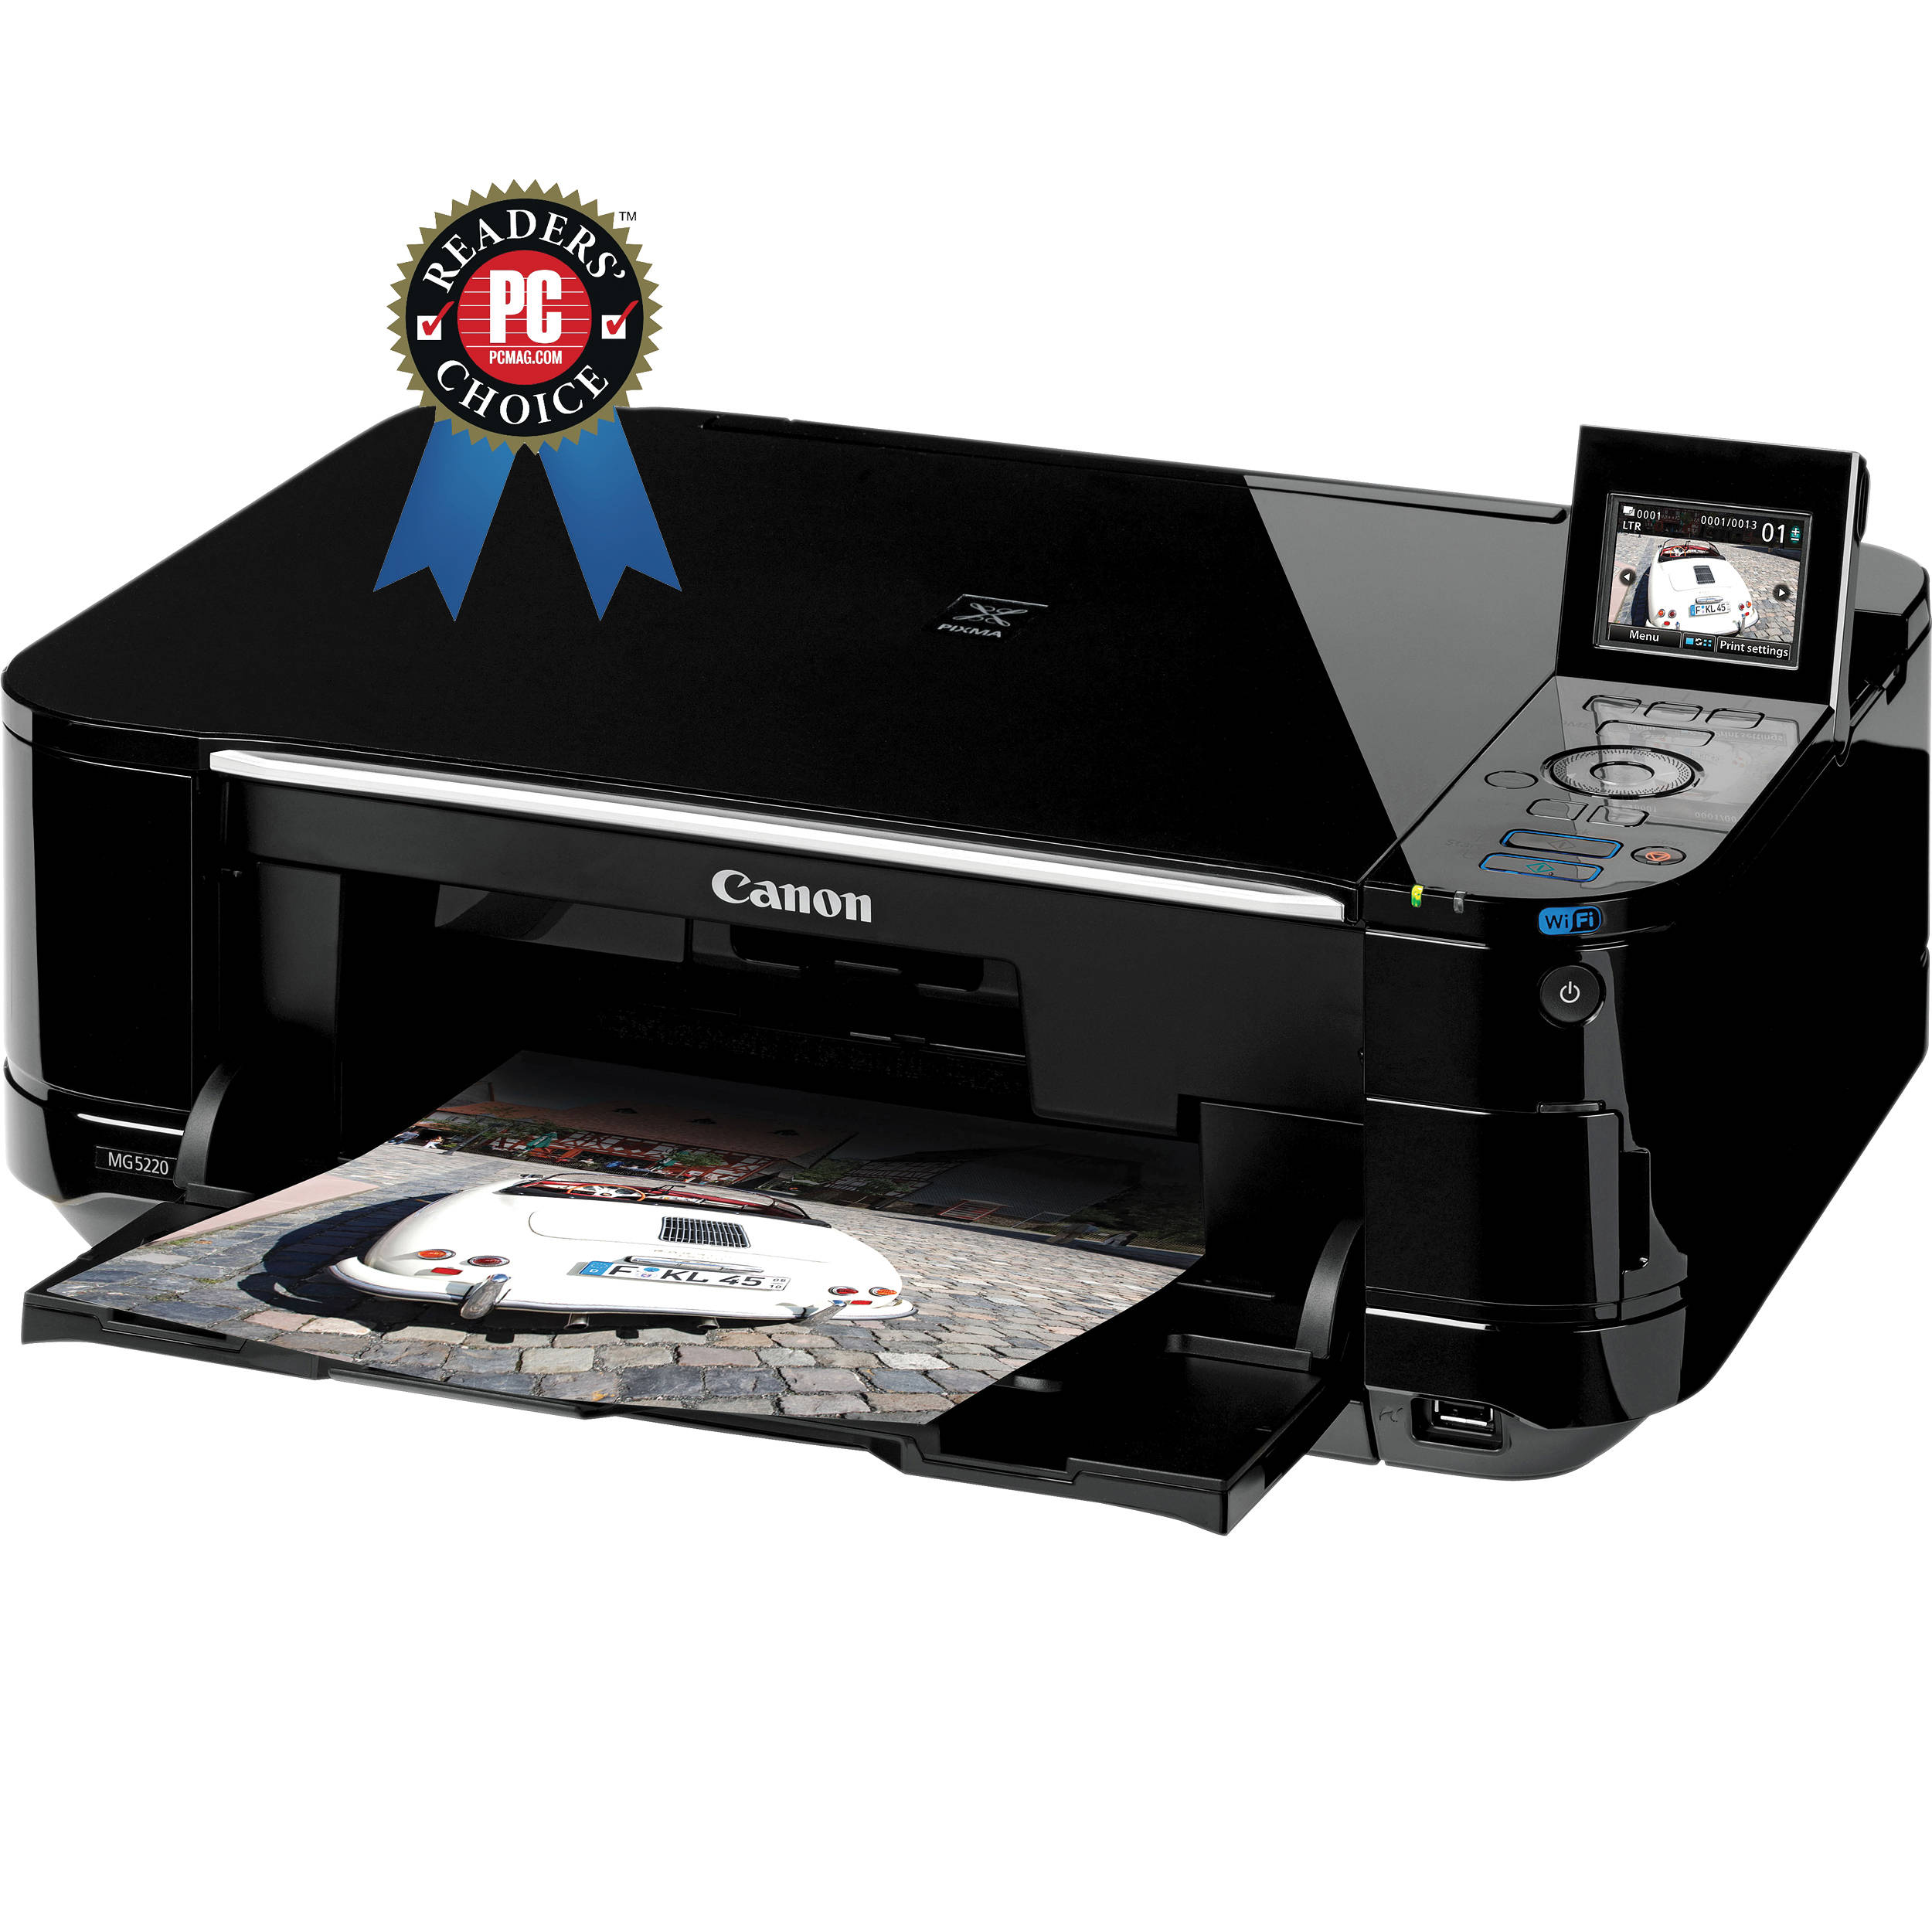 Peculiar Canon Pixma Wireless Photo Inkjet Printer Canon Pixma Wireless Photo Inkjet Canon Pixma Mg5220 Manual Canon Pixma Mg5220 Won T Turn On dpreview Canon Pixma Mg5220